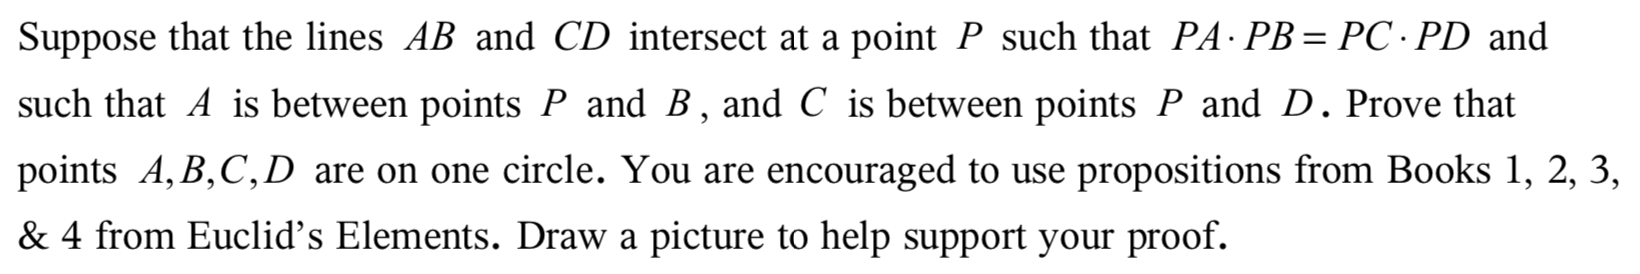 Suppose that the lines AB and CD intersect at a point P such that PA PB PC PD and such that A is between points P and B, and C is between points P and D. Prove that points A, B,C,D are on one circle. You are encouraged to use propositions from Books 1, 2, 3, & 4 from Euclid's Elements. Draw a picture to help support your proof.